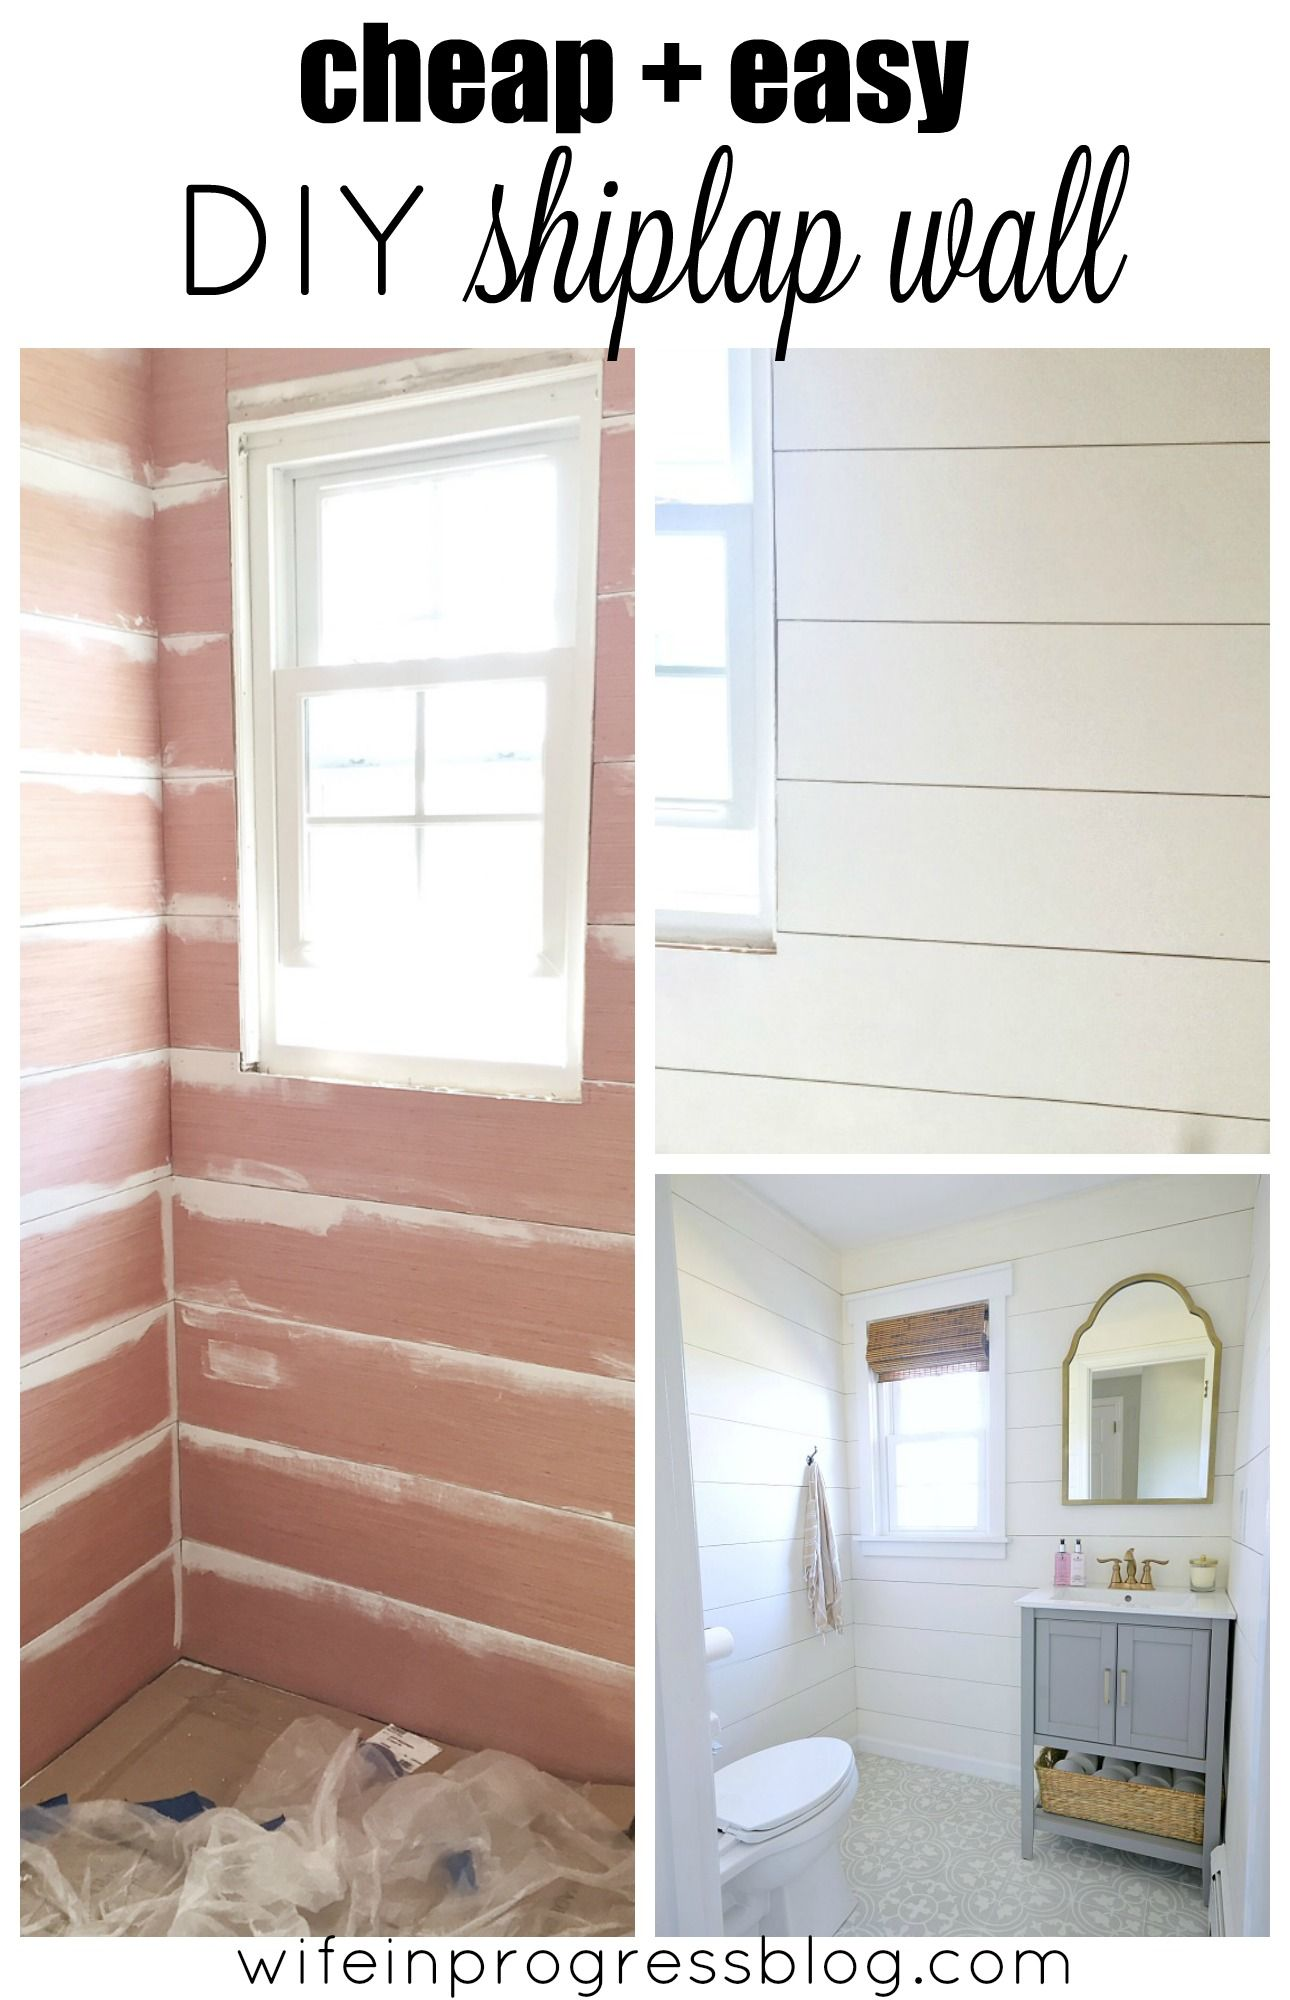 Easy Bathroom Wall Ideas beautiful shiplap walls from cheap plywood | cheap plywood